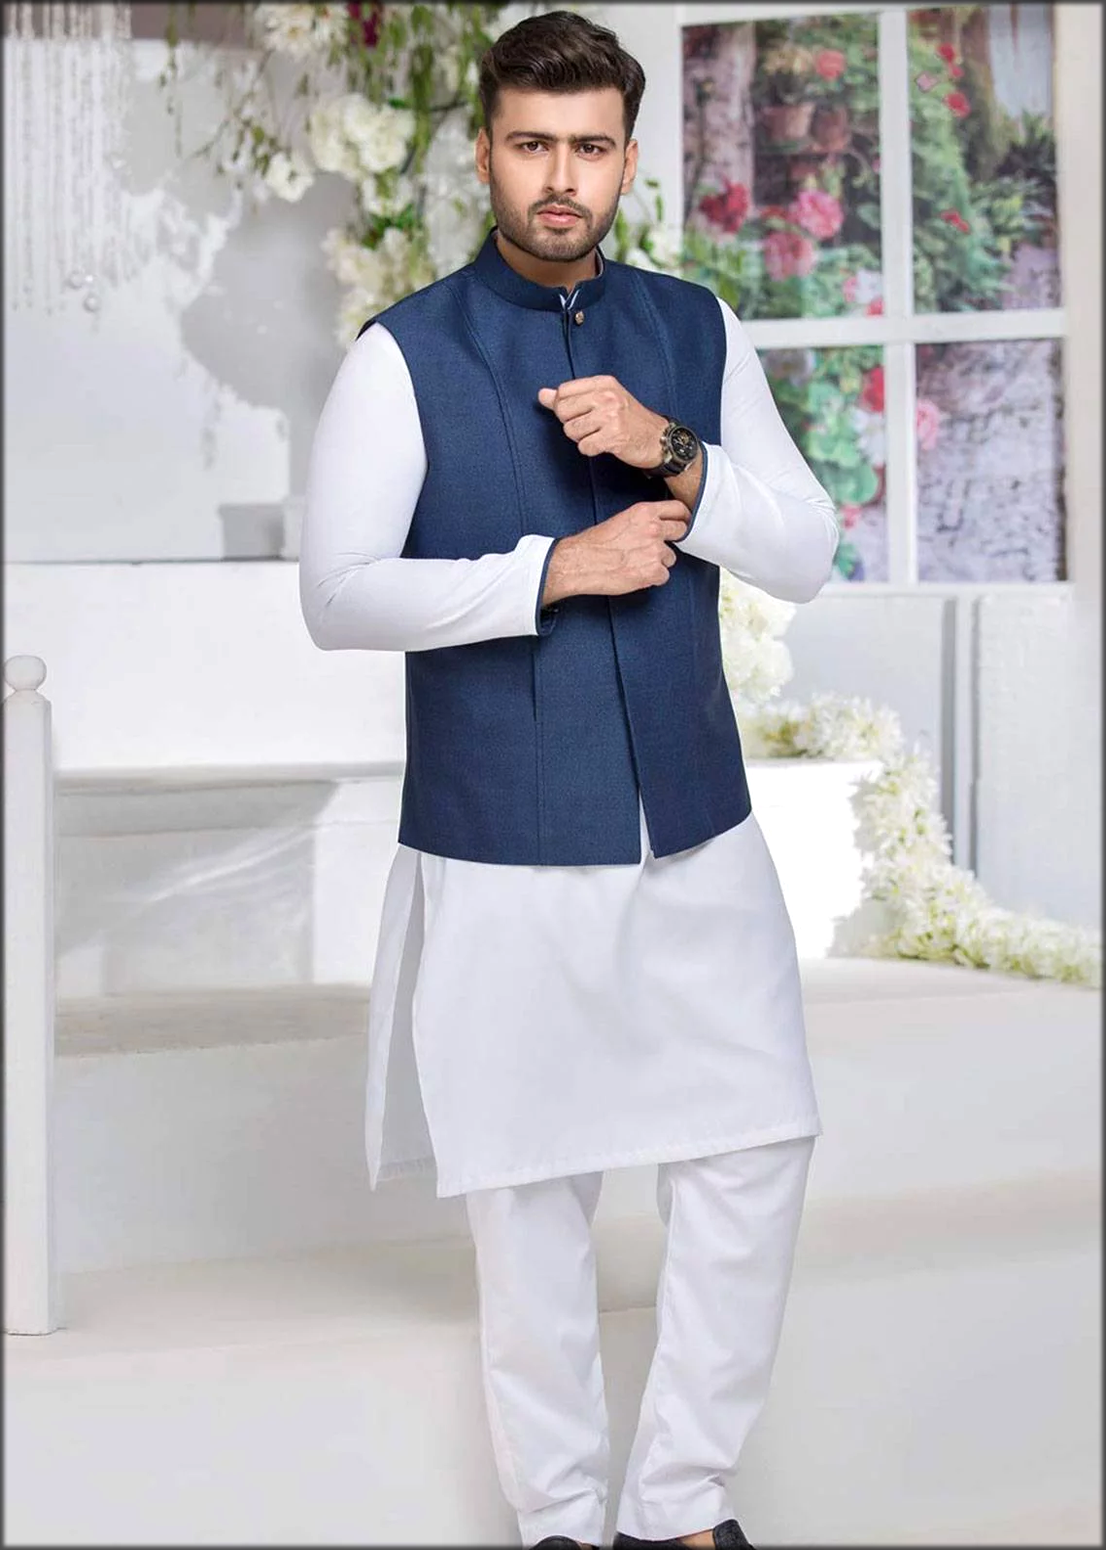 Engagement Dresses For Men in Formal Kurta Pyjama With Wasitcoat